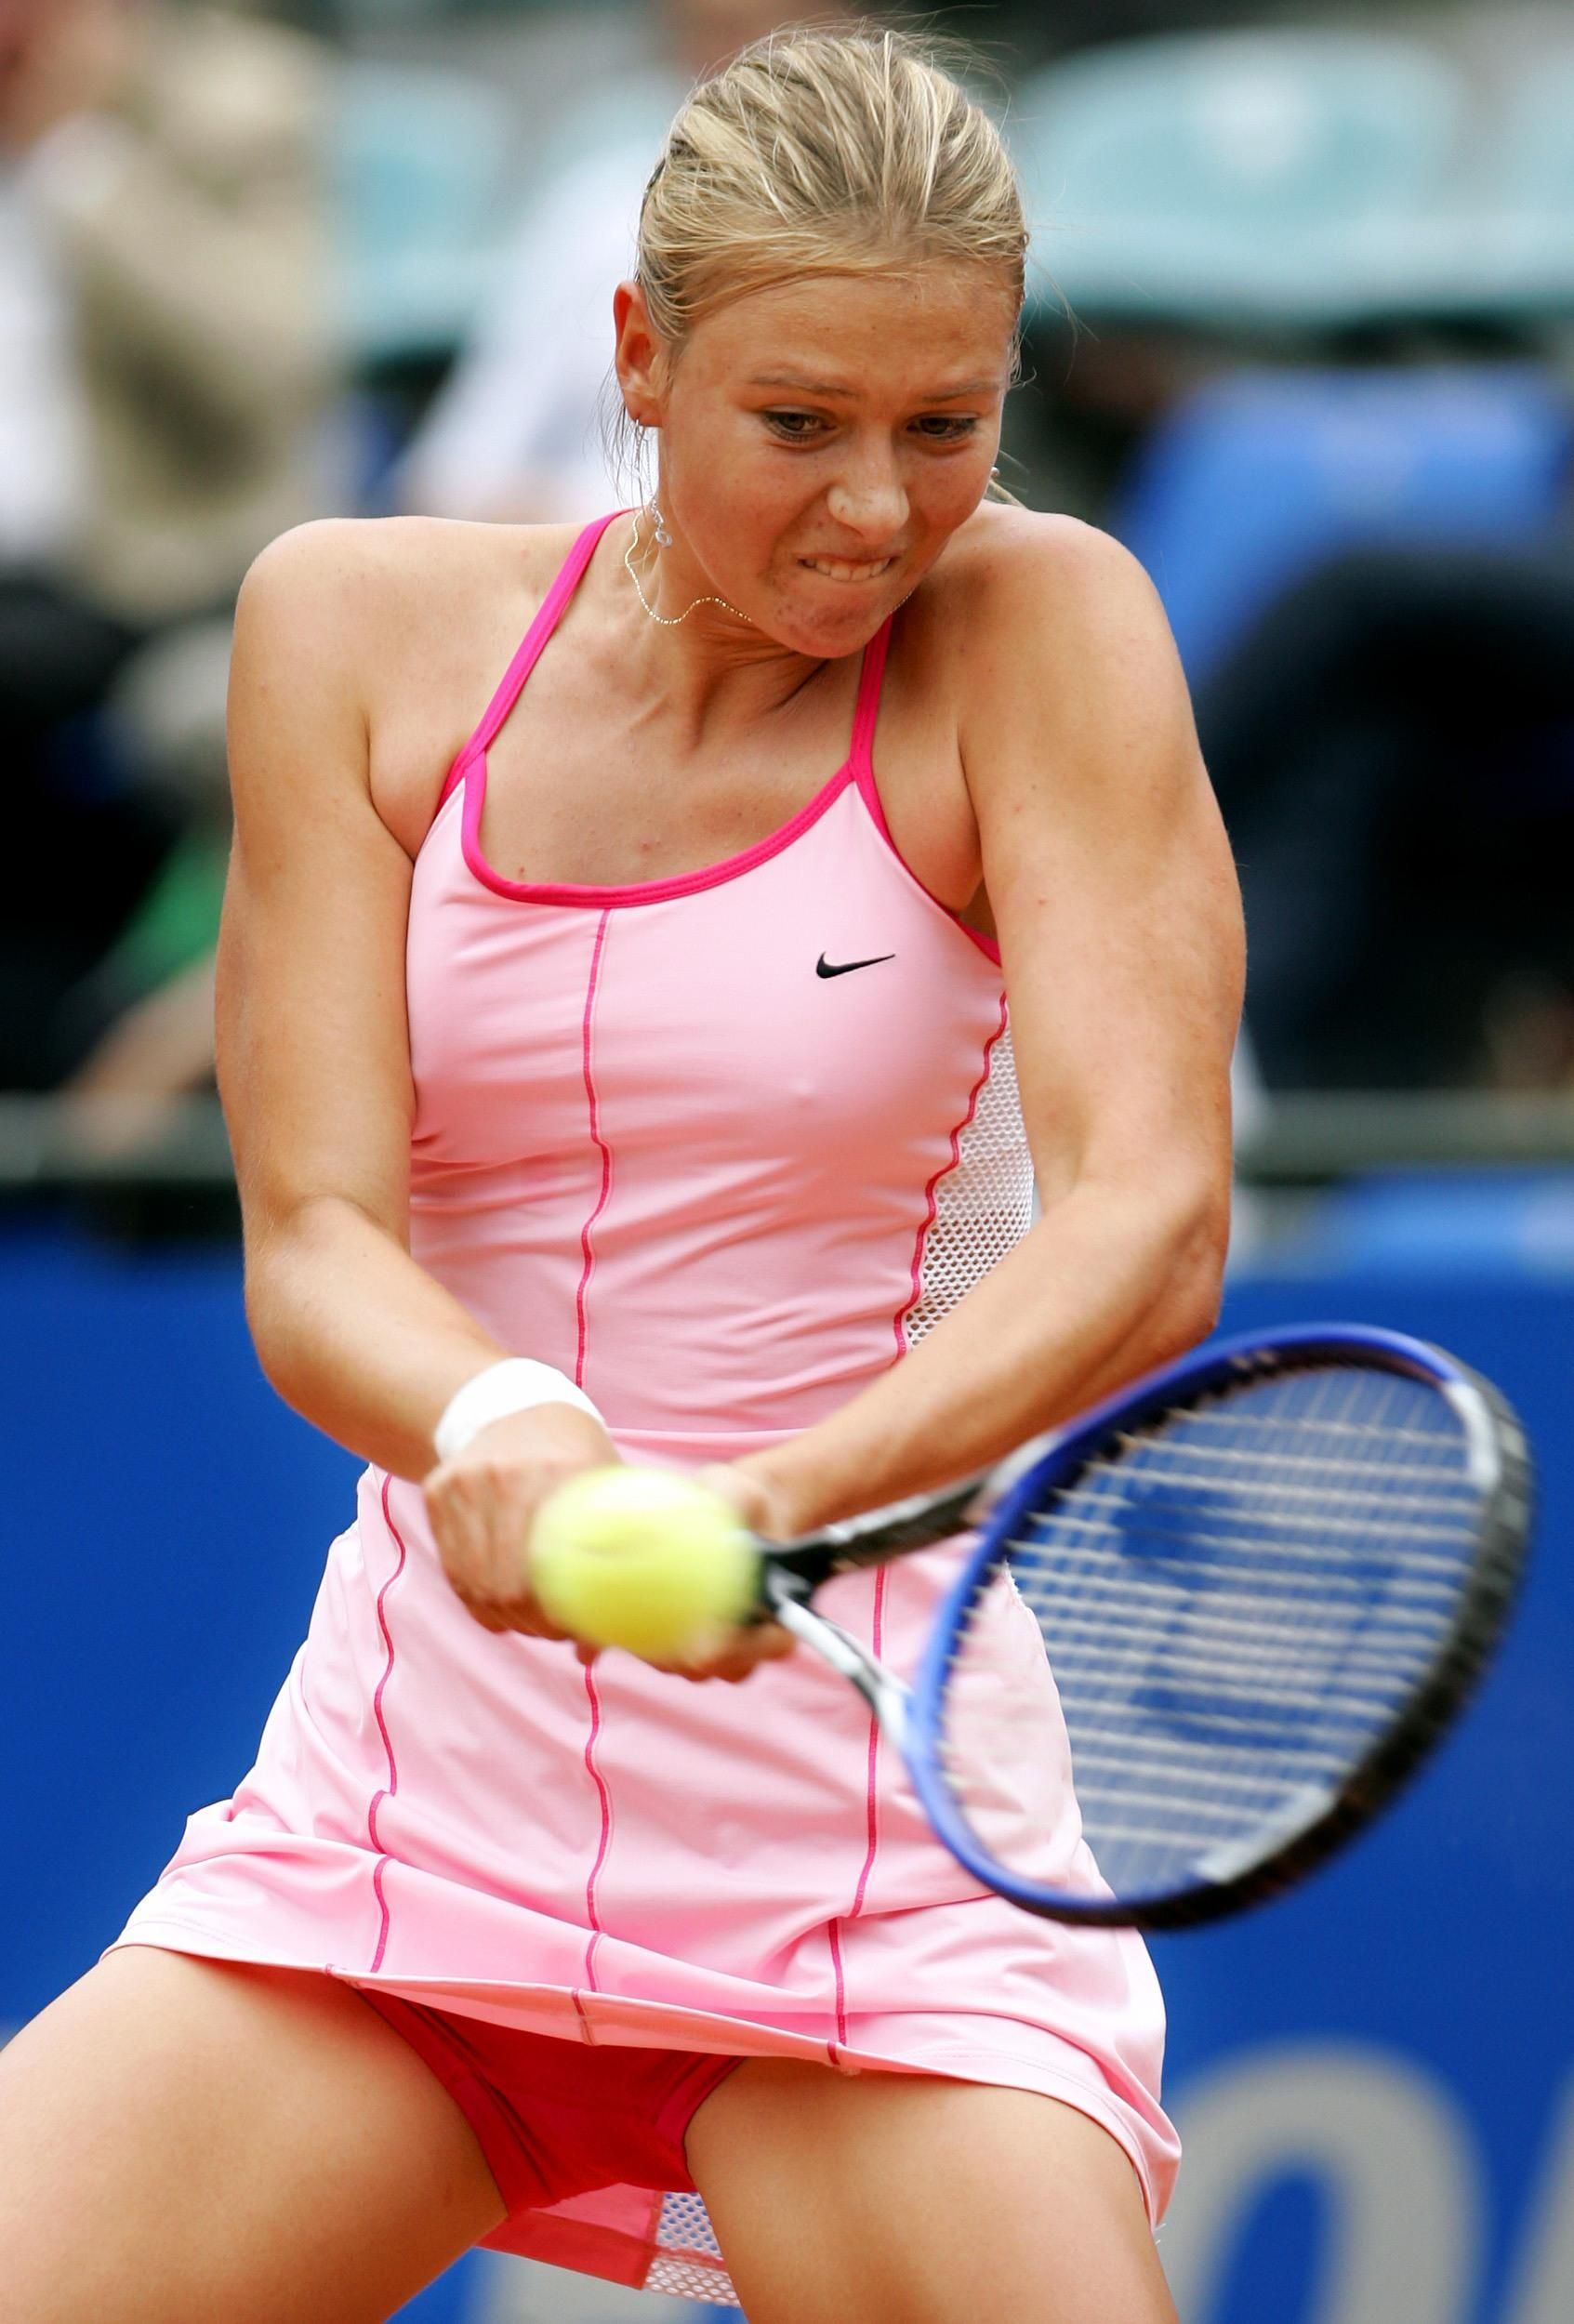 Real free gallery of Sexy Tennis